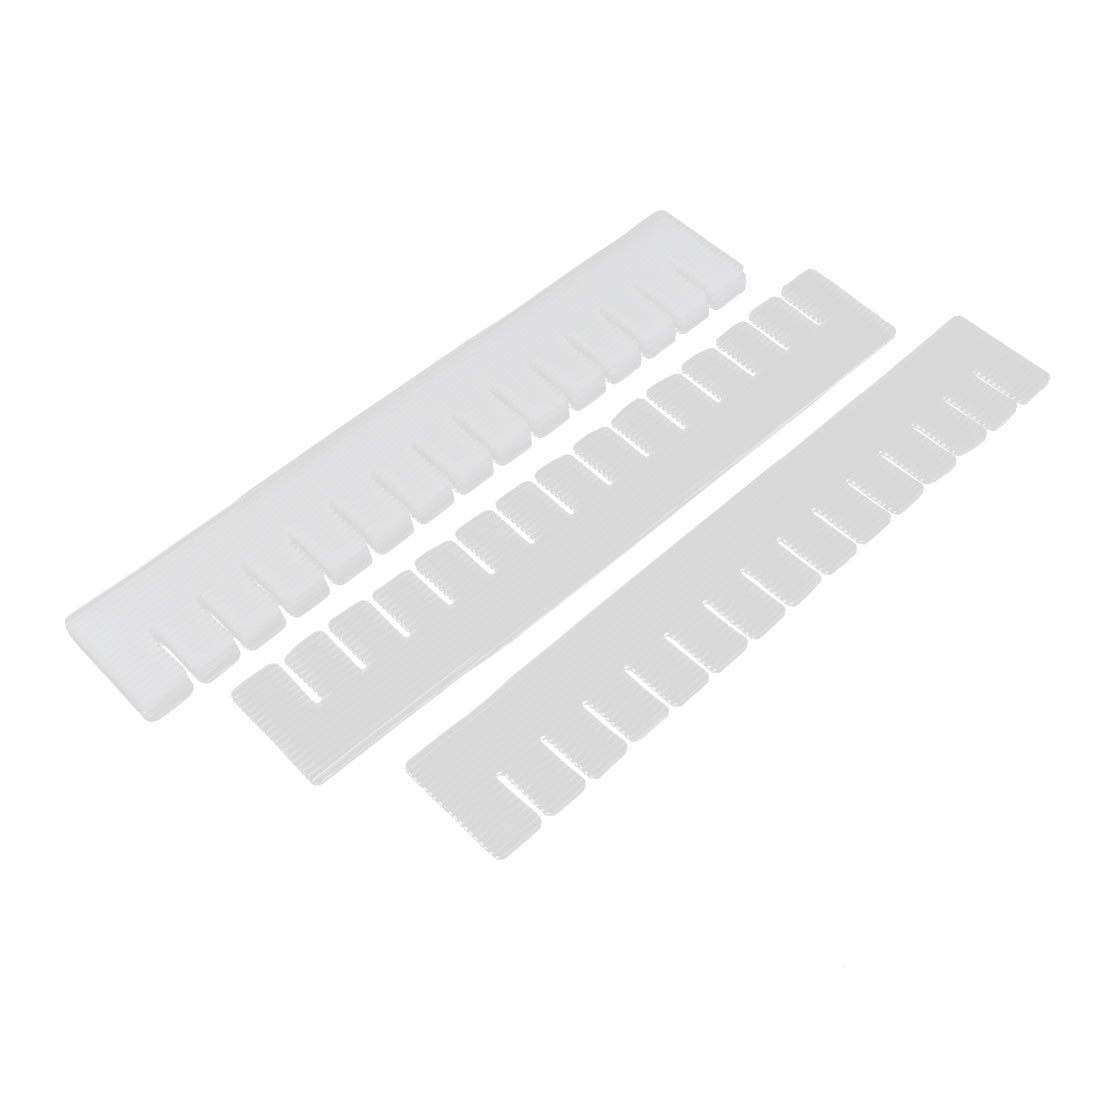 uxcell Plastic DIY Grid Drawer Divider Household Organizer 6 Pcs Off White a16012900ux0325